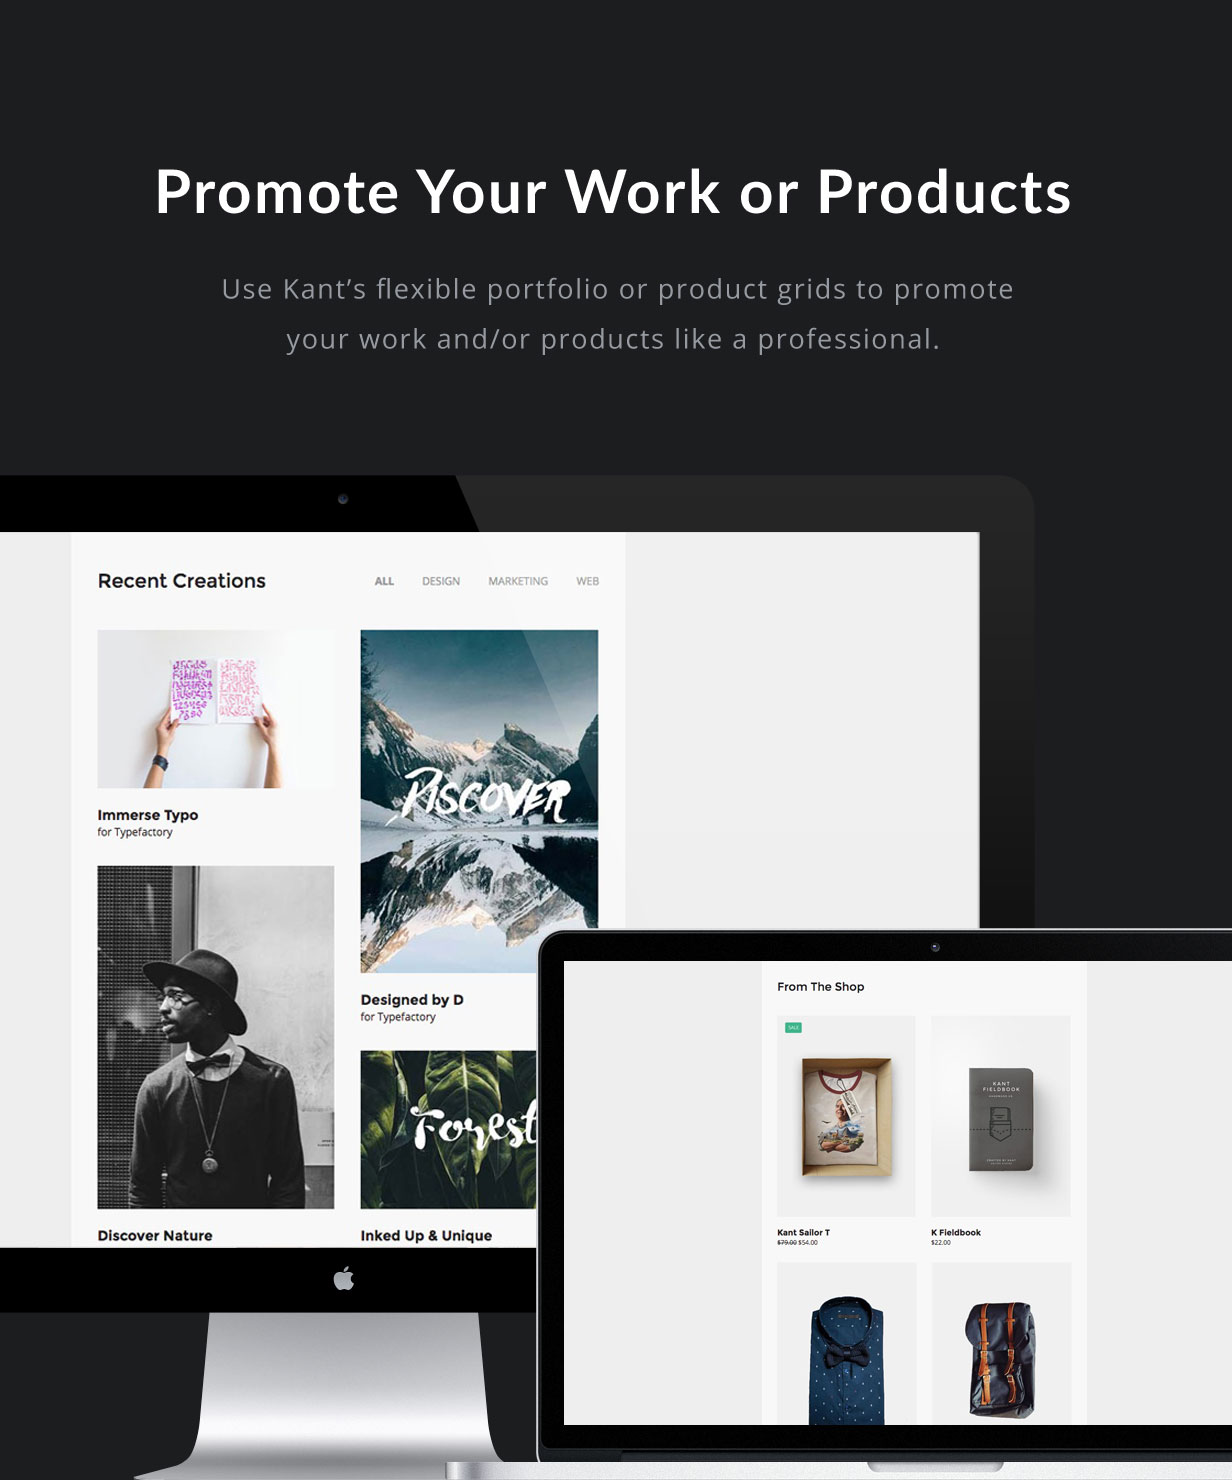 tf profile grids - Kant - Responsive Email for Startups: 50+ Sections + MailChimp + Mailster + Shopify Notifications